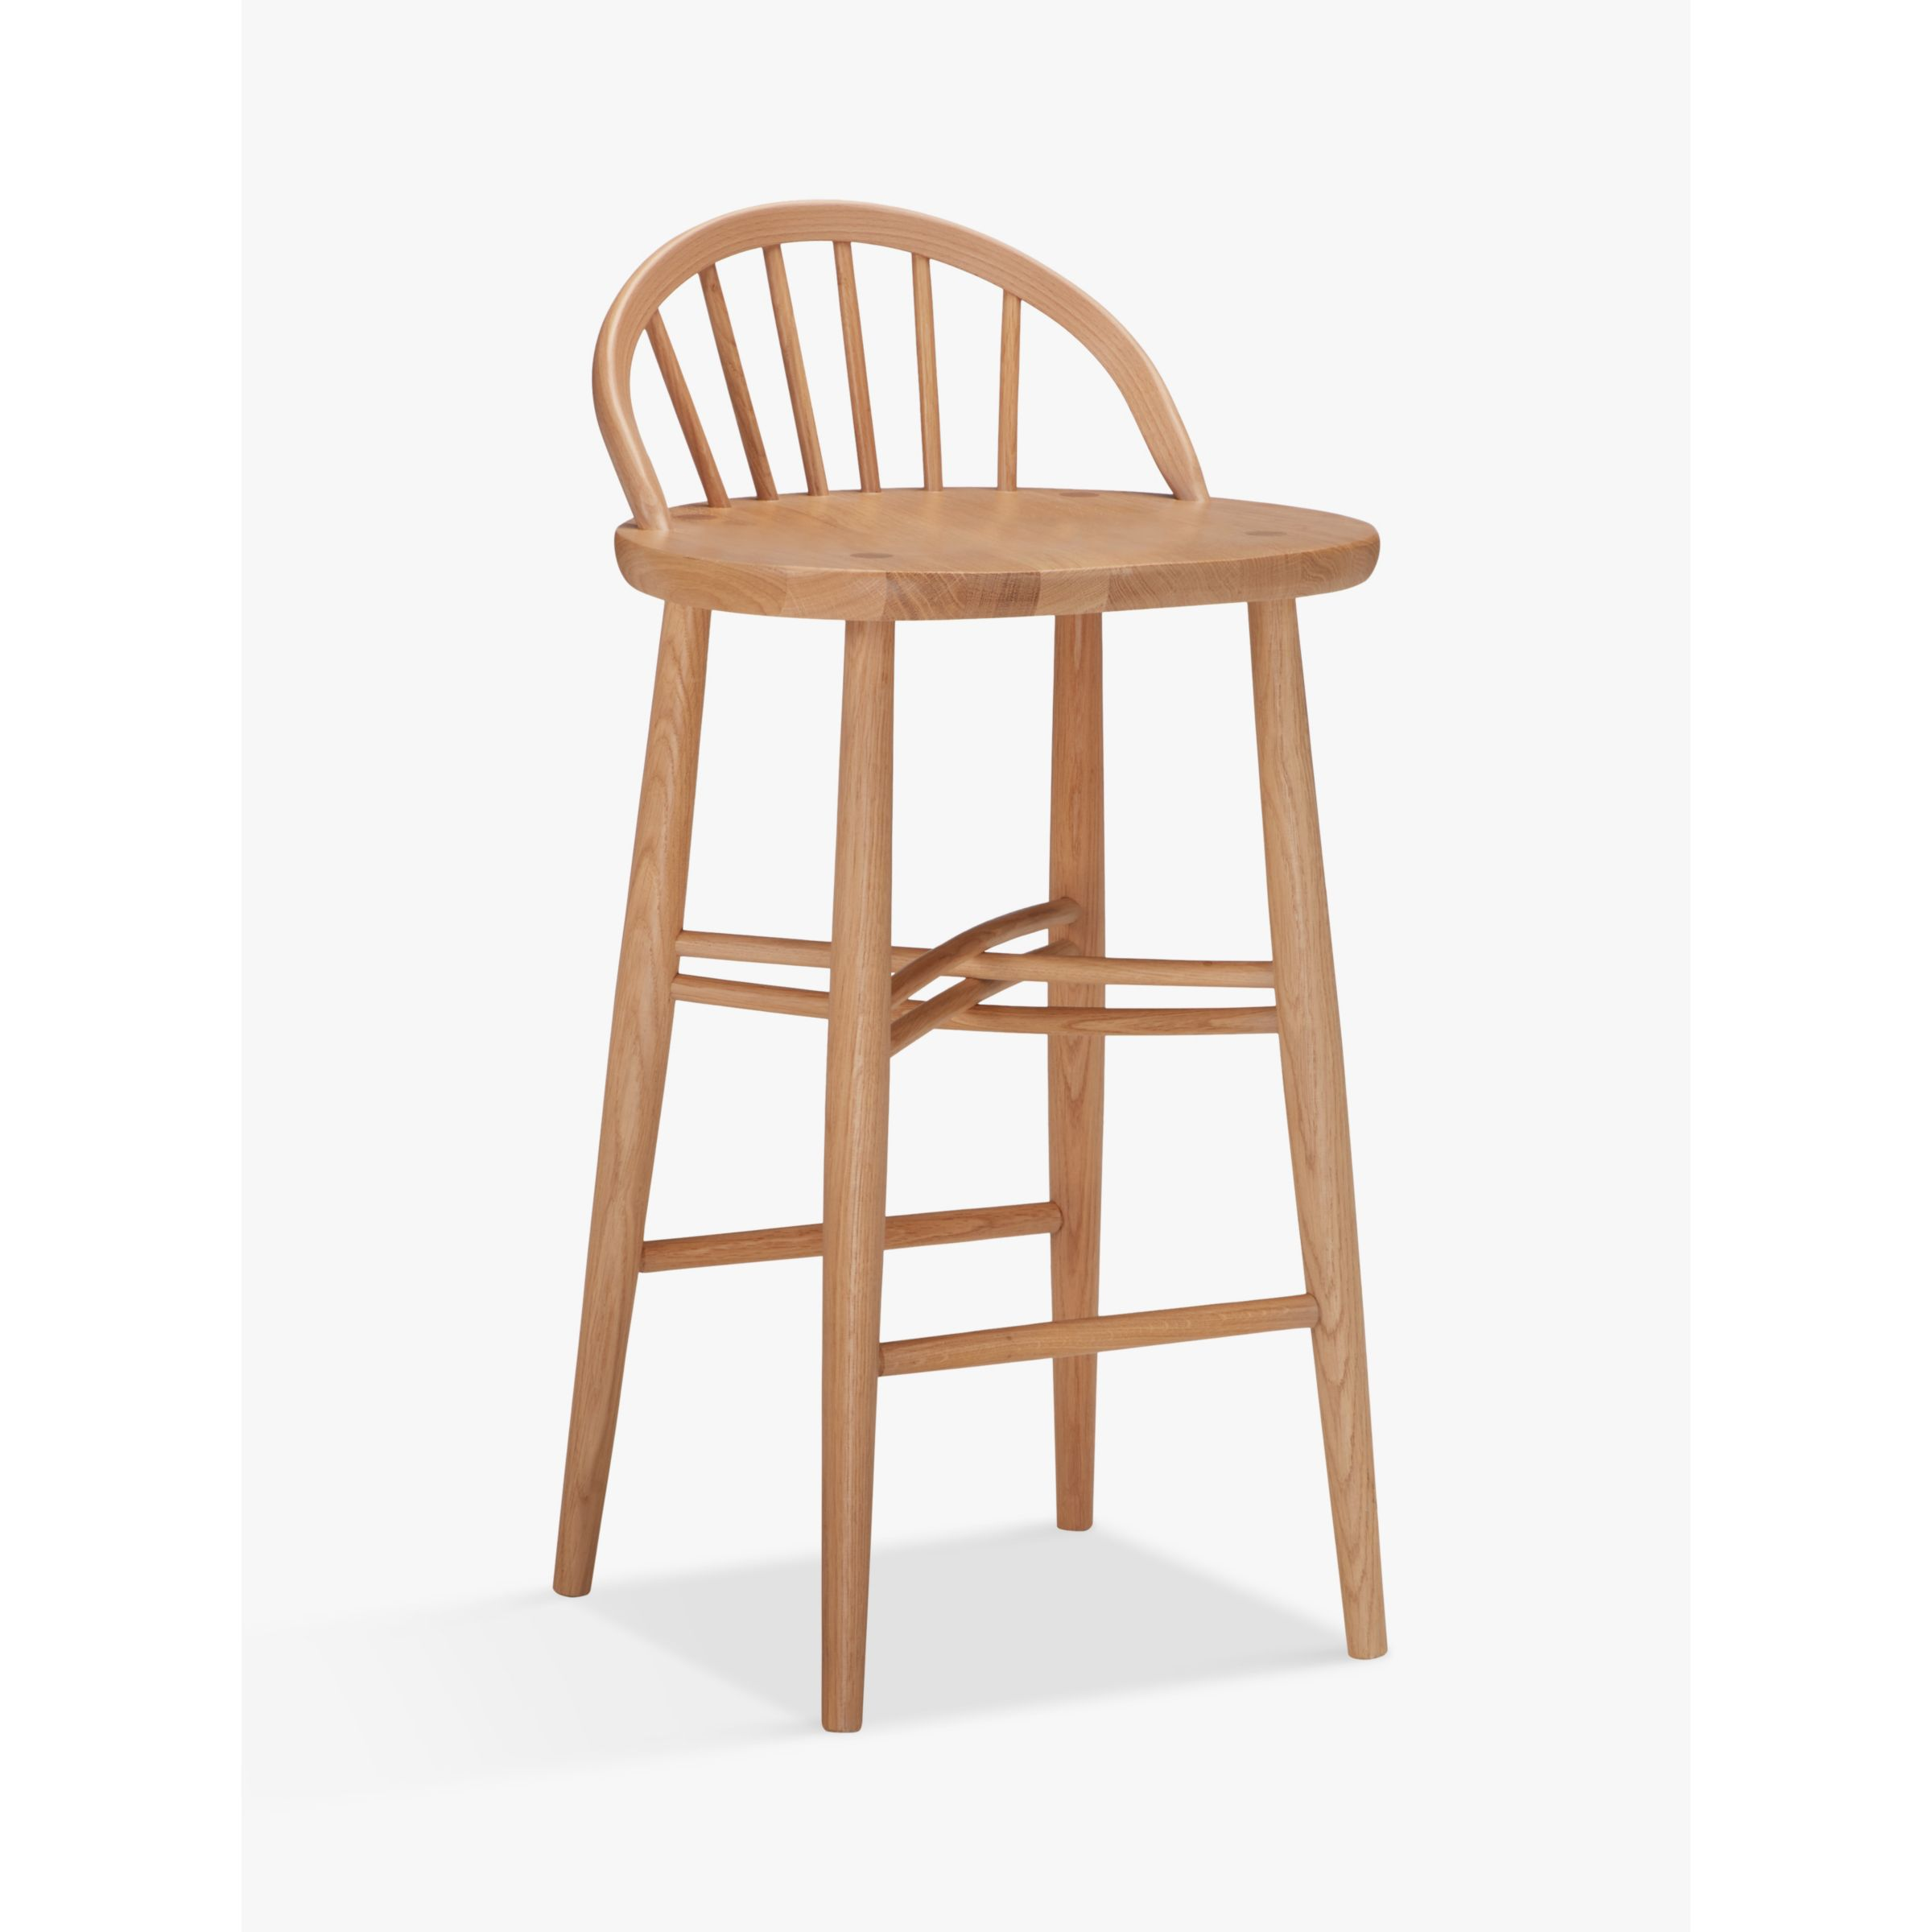 ercol for John Lewis ercol for John Lewis Shalstone Bar Stool